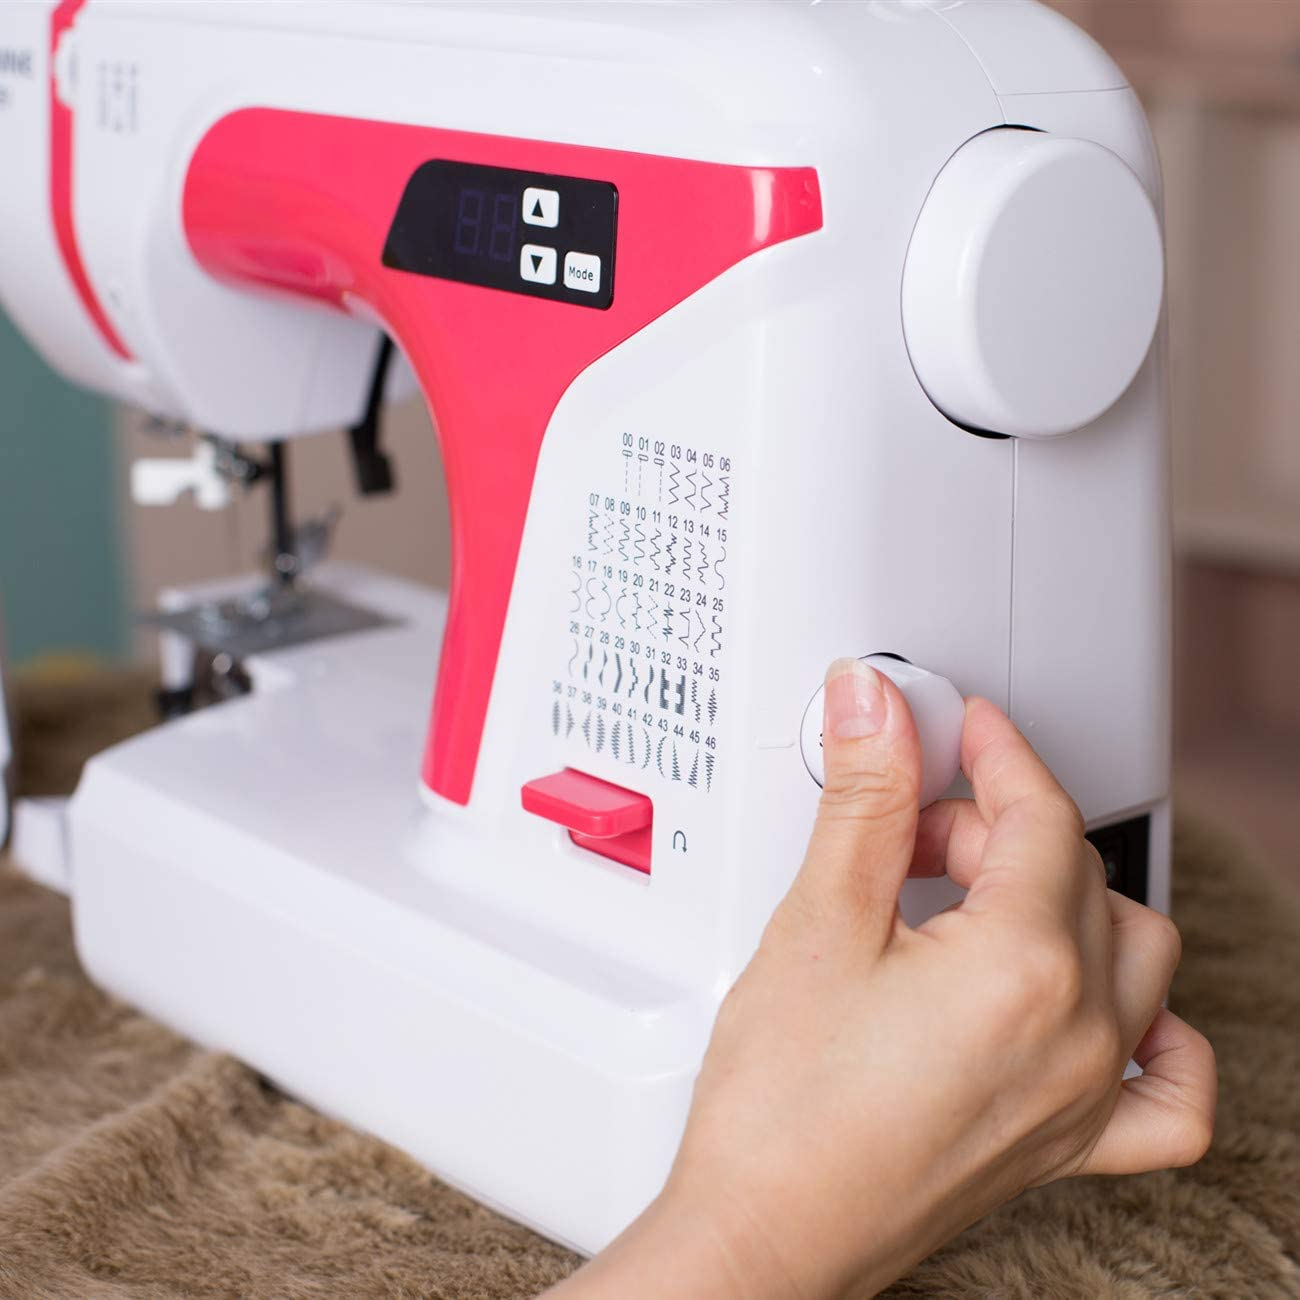 Electronic Sewing and Quilting Machine with 50 Built-in Stitches SWNNE Y21 Computerized Sewing Machine Red Automatic Needle Threader 4-Step Buttonhole LED Display